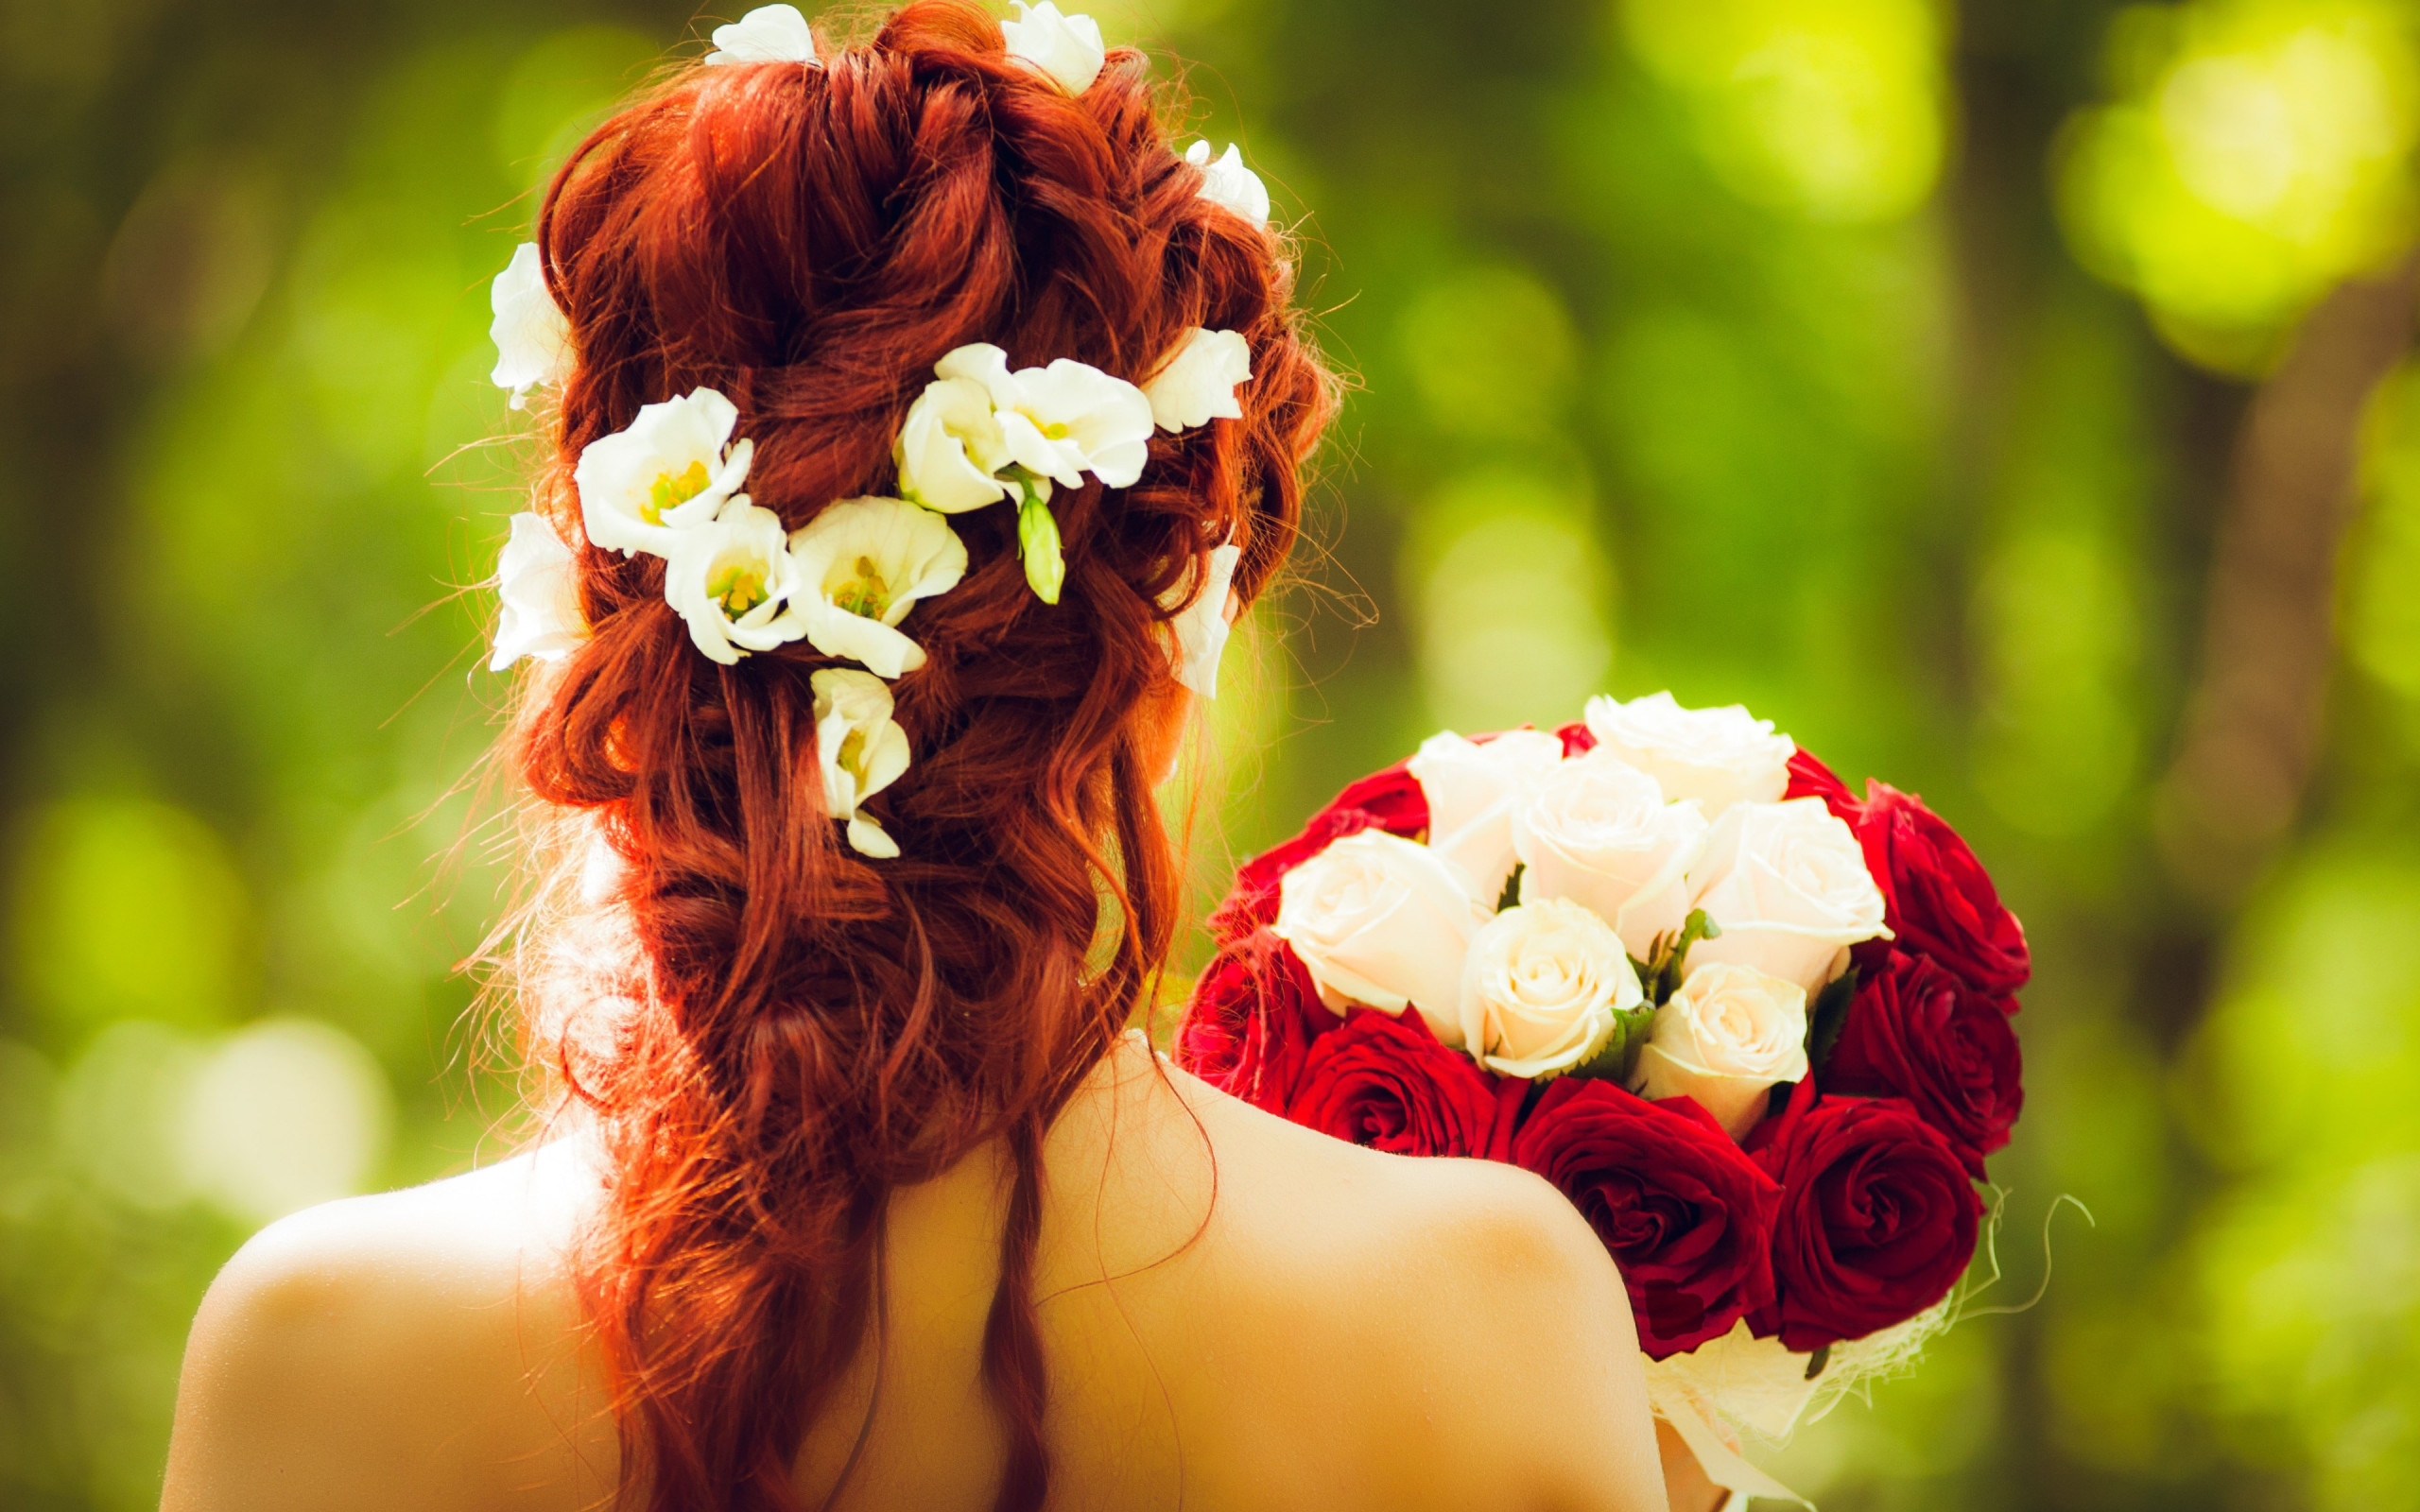 Bride and wedding flowers | 2560x1600 wallpaper